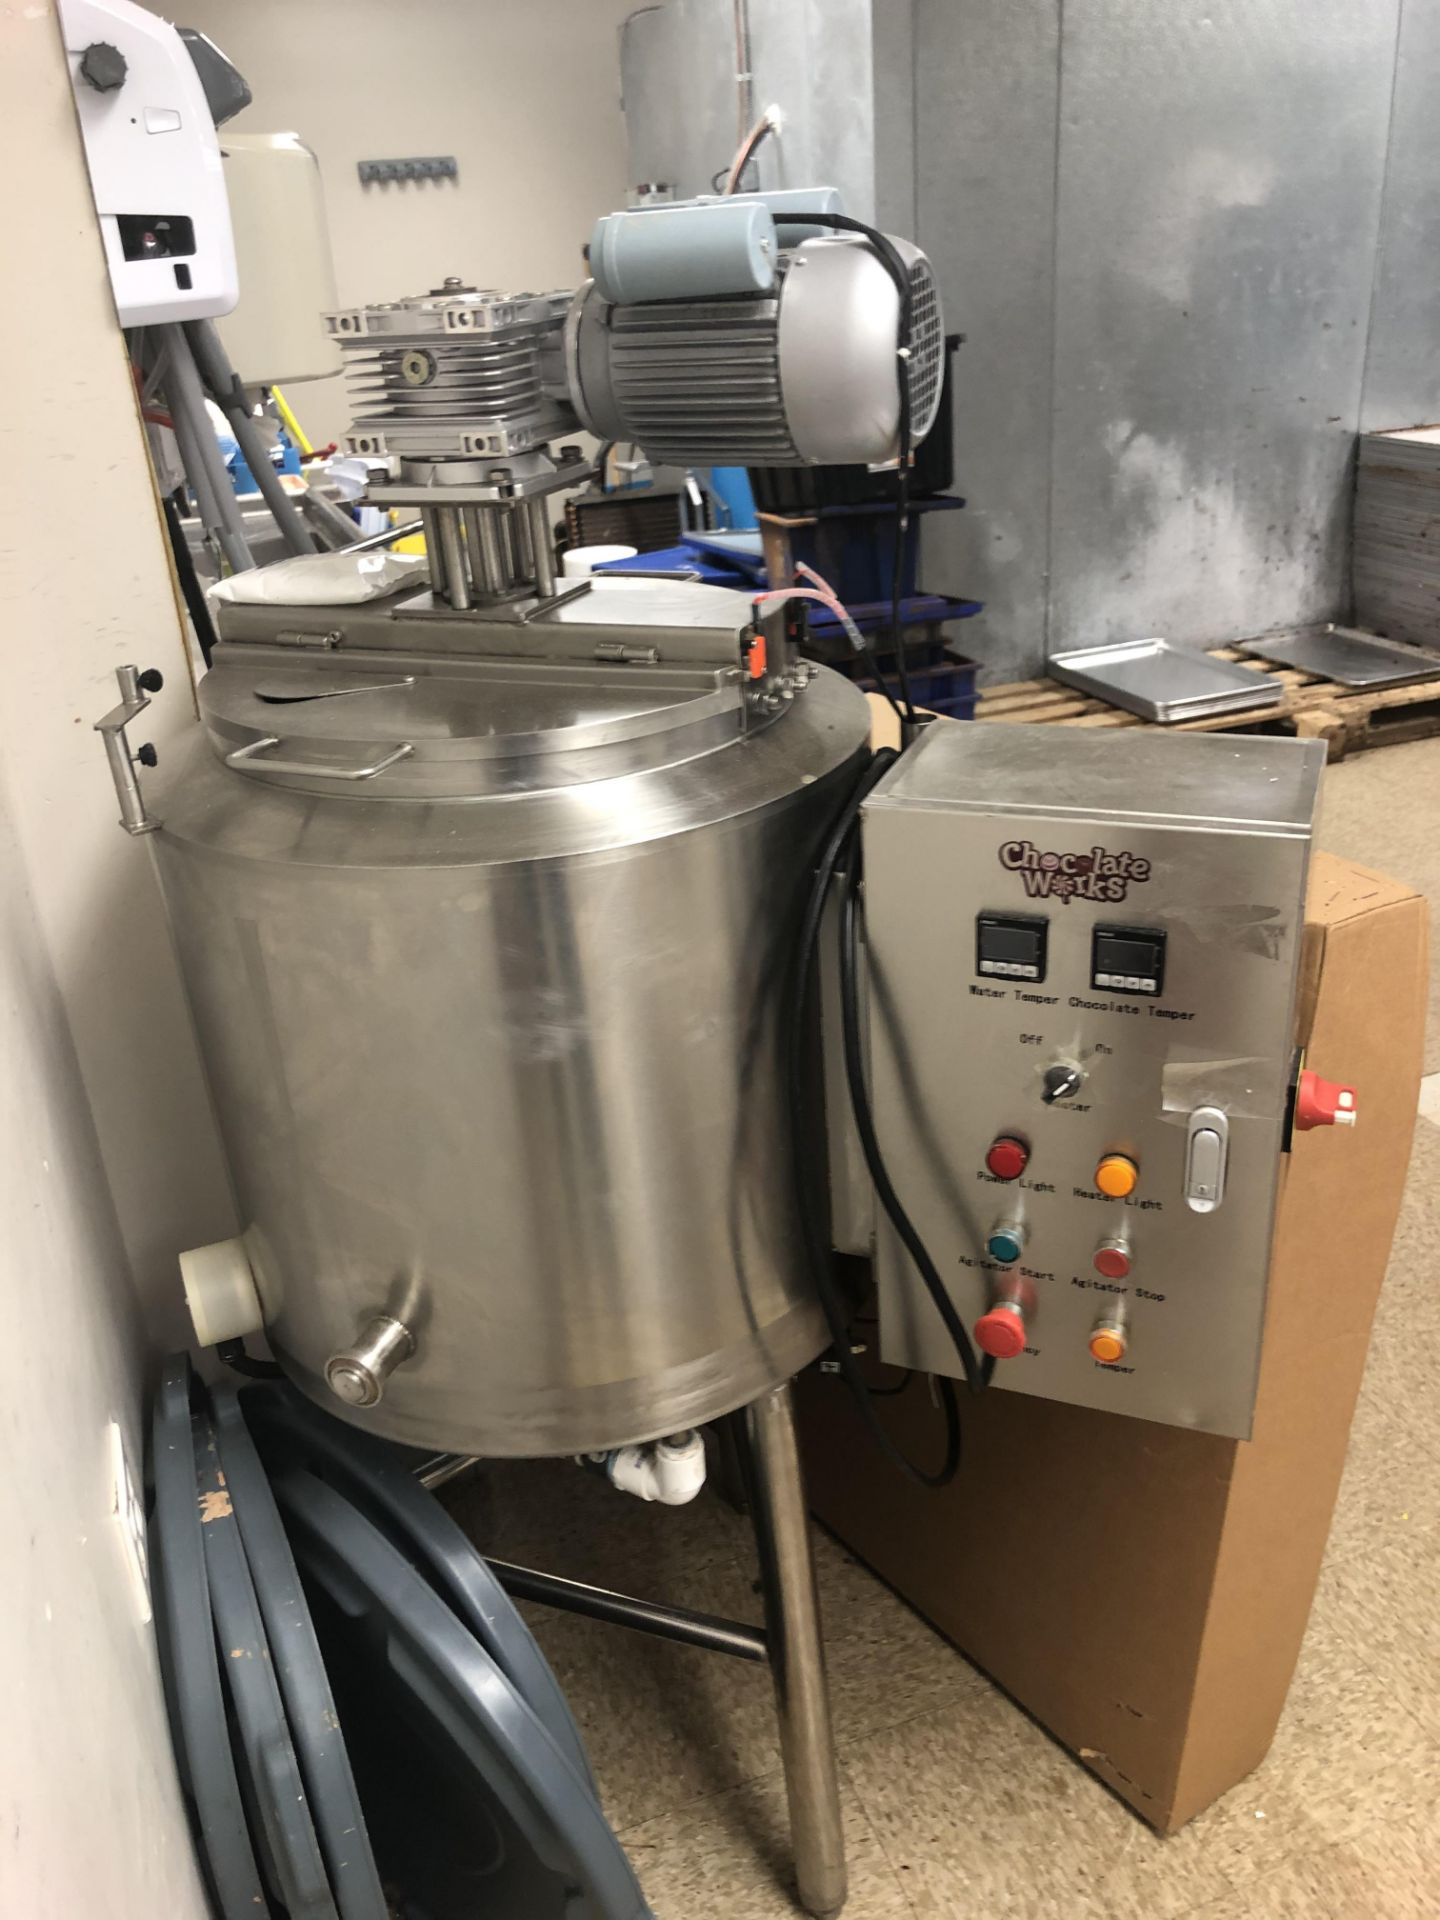 Lot 13 - Keychoc 200-lb Stainless Steel Chocolate melter - Agitated - Water Jacketed - Electric heaters -